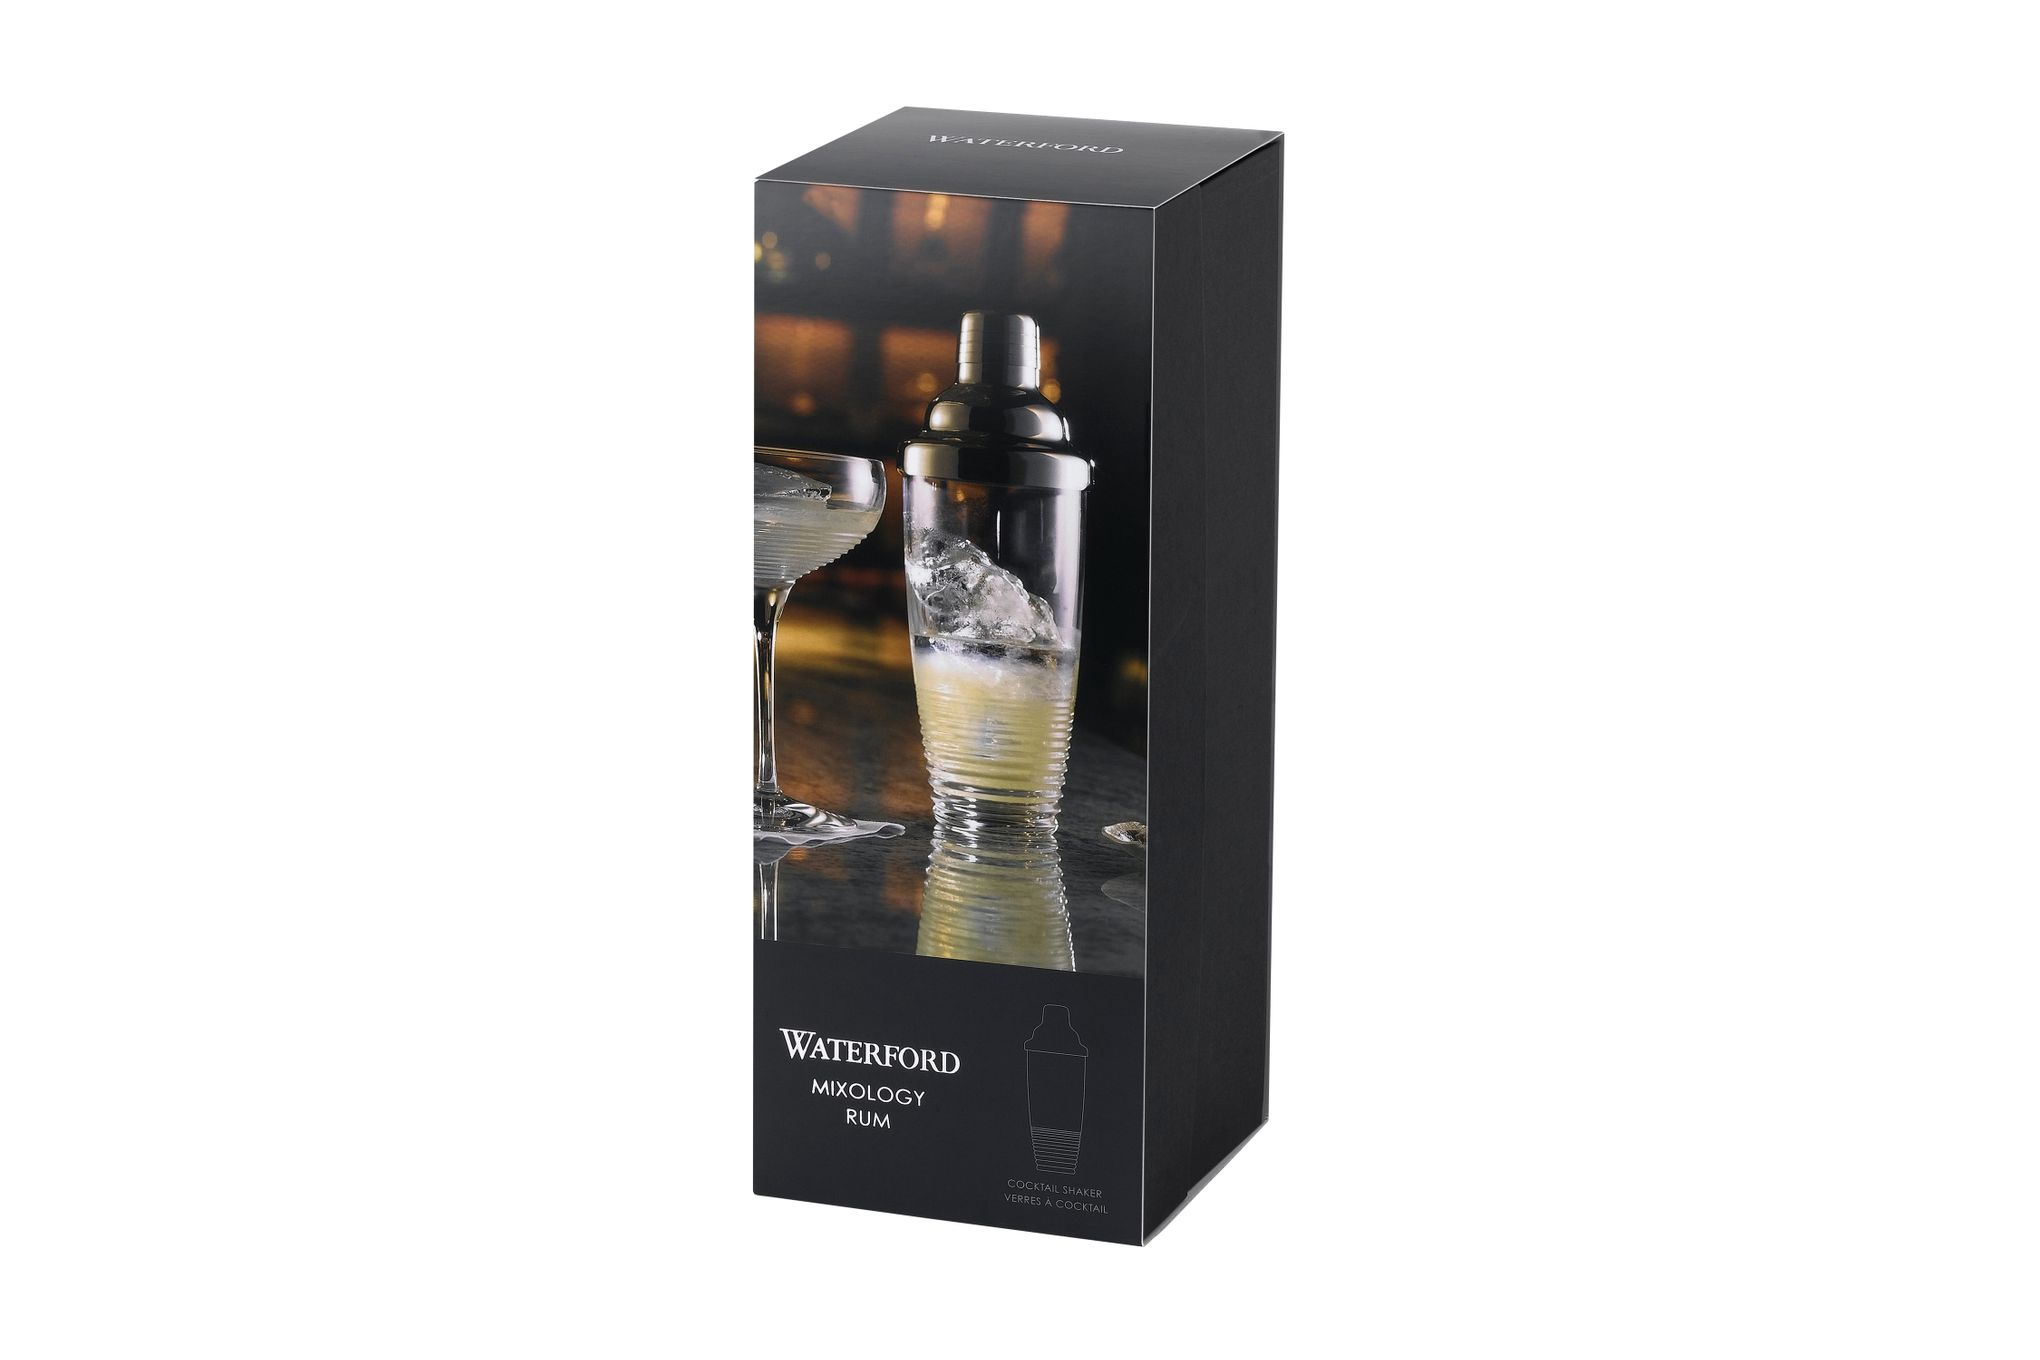 Waterford Mixology Cocktail Shaker 10 x 27cm, 750ml thumb 2